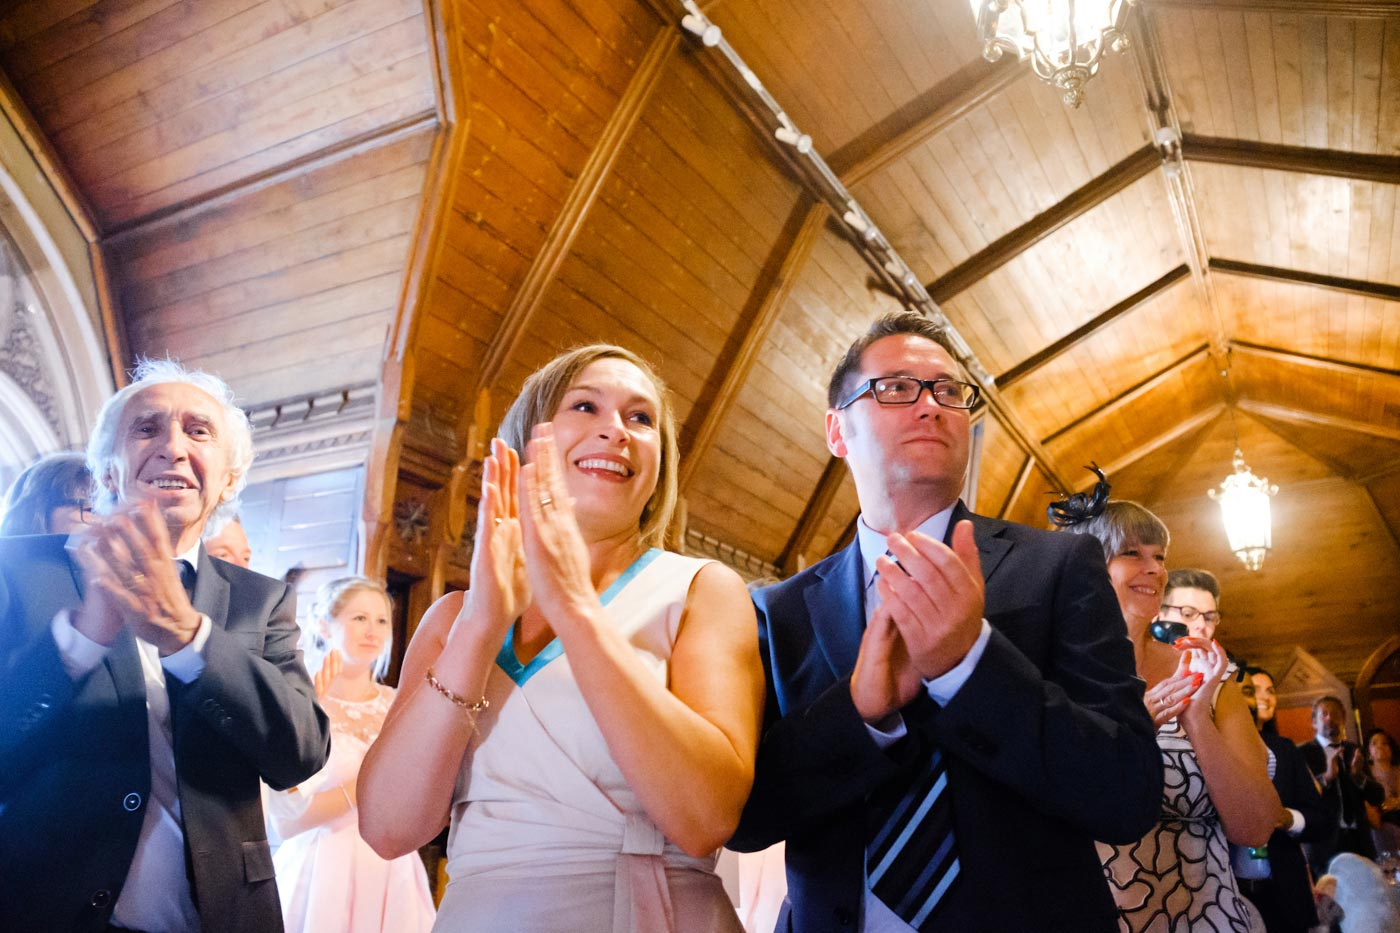 Guests welcoming the bride and groom as they enter the wedding breakfast room at Ettington Park Hotel